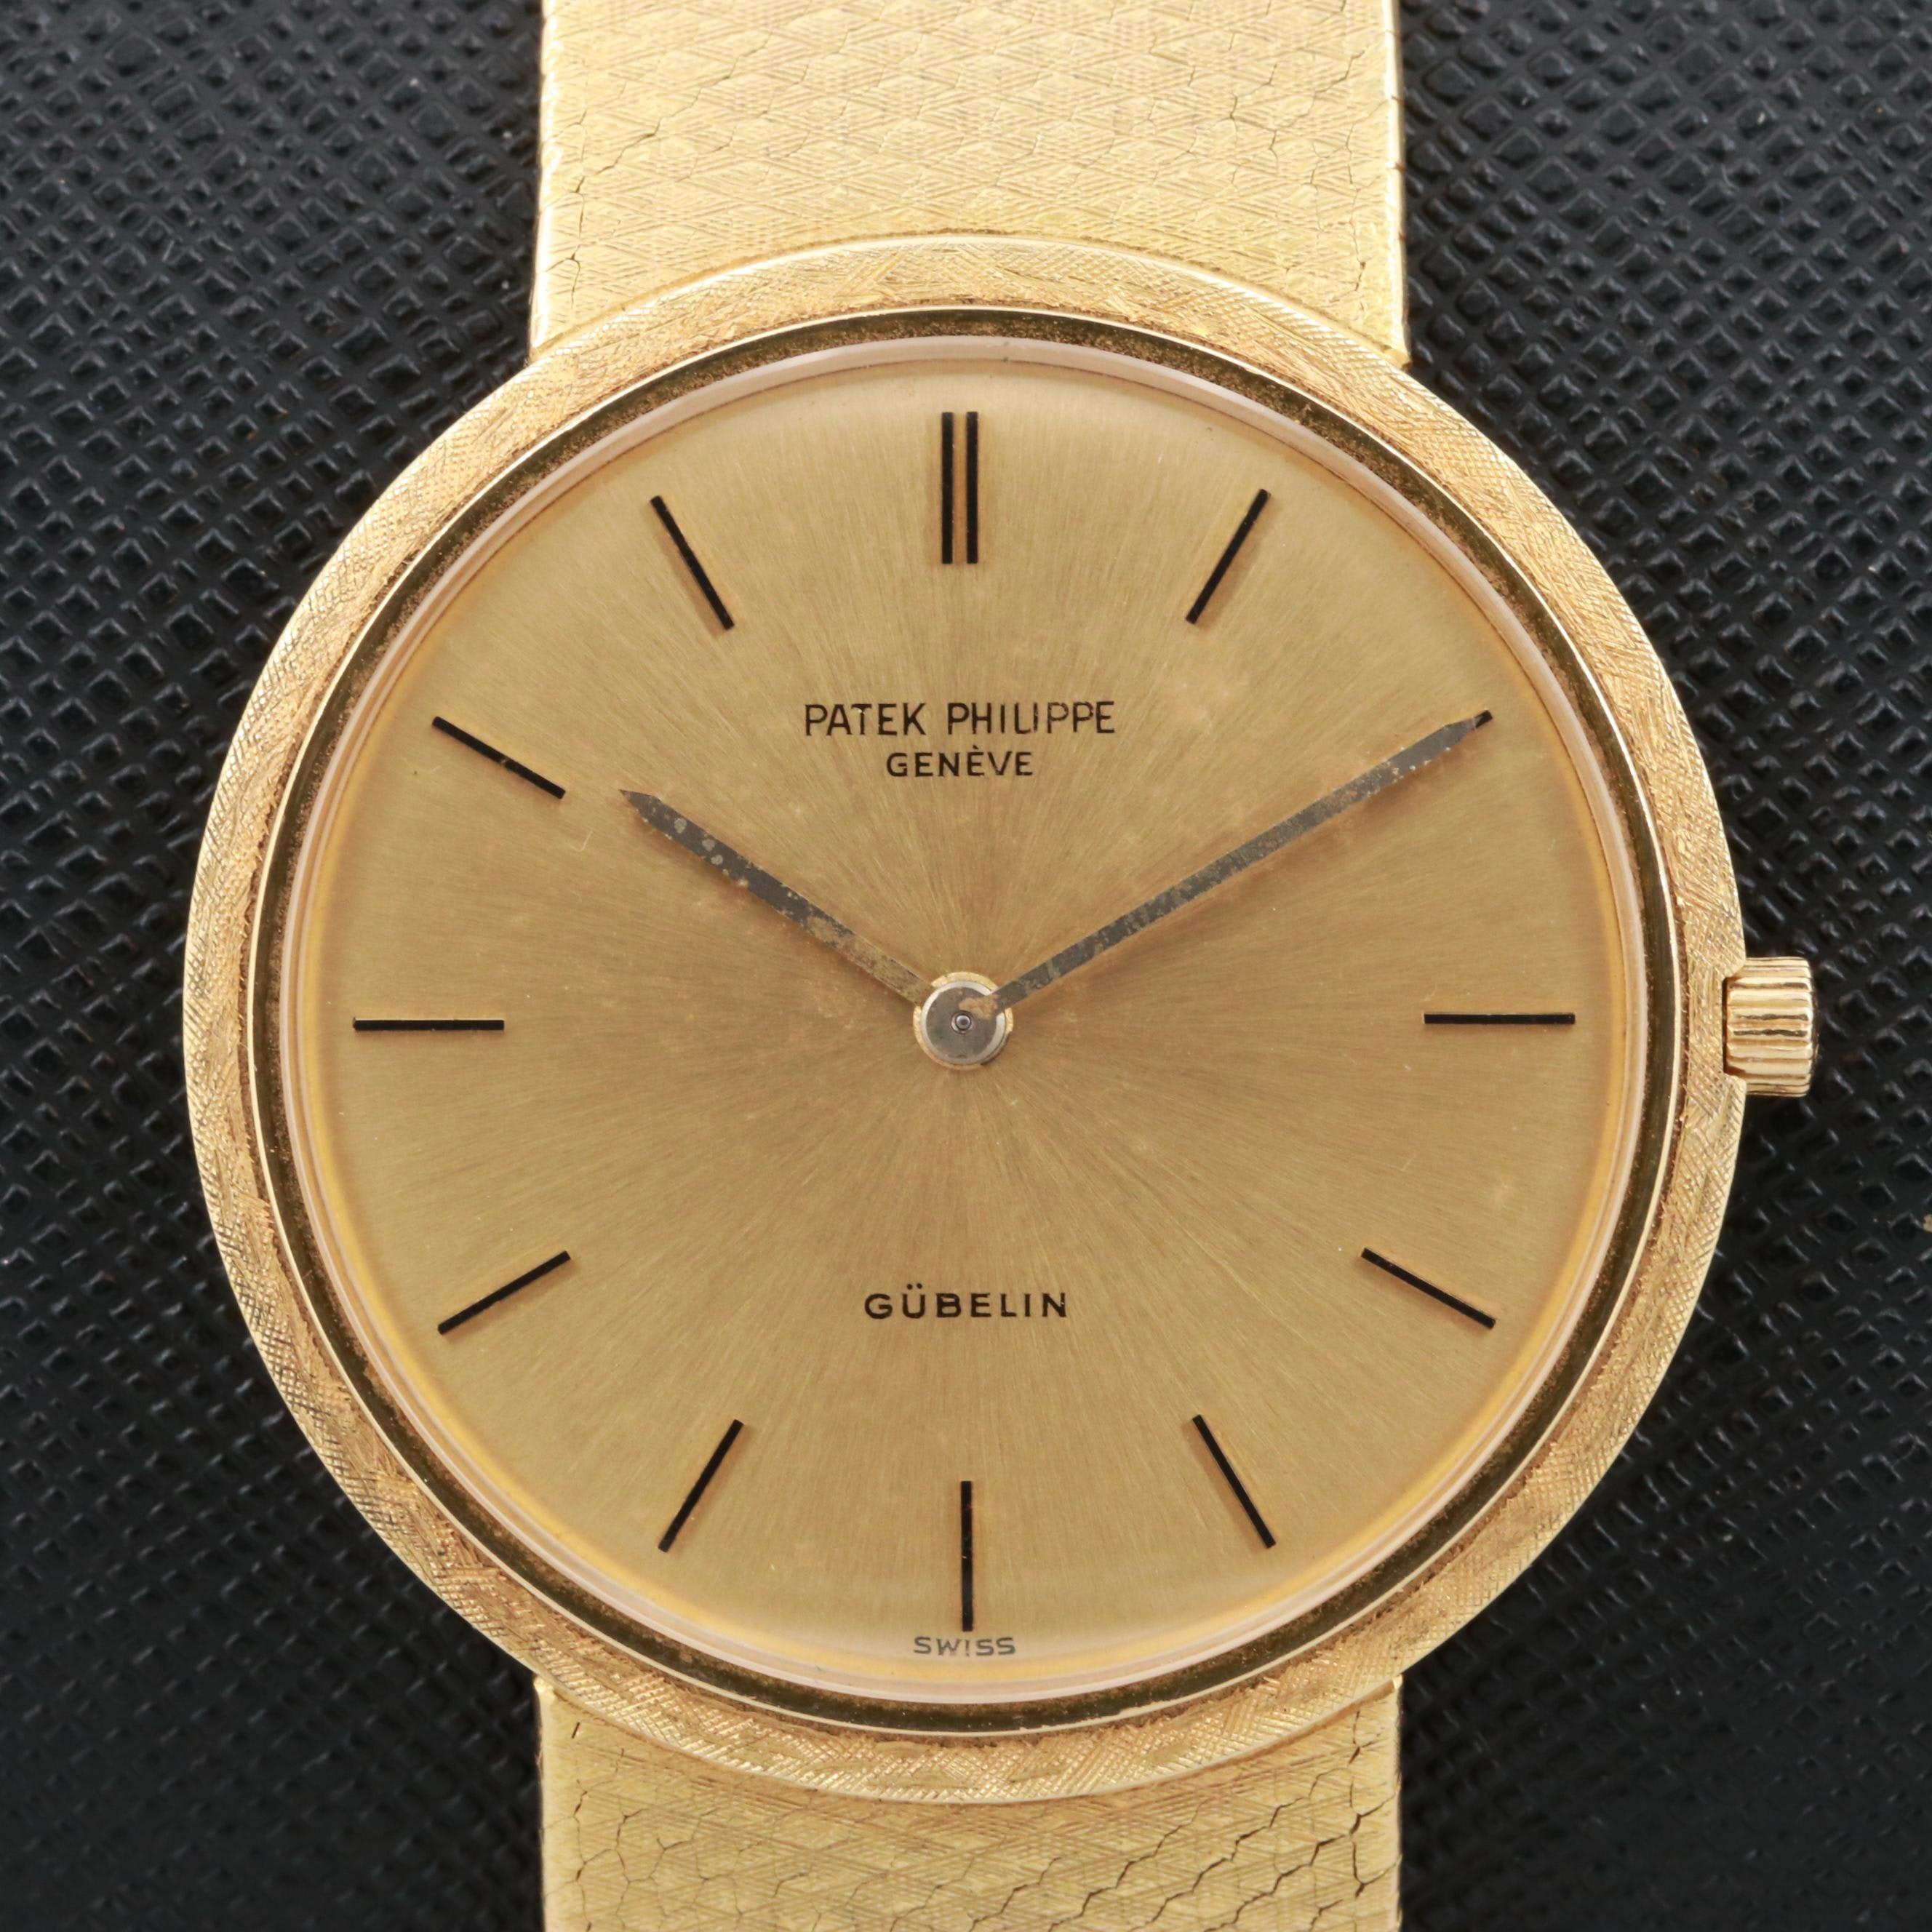 Vintage Patek Philippe Calatrava 18K Gold Stem Wind Wristwatch With Gubelin Dial